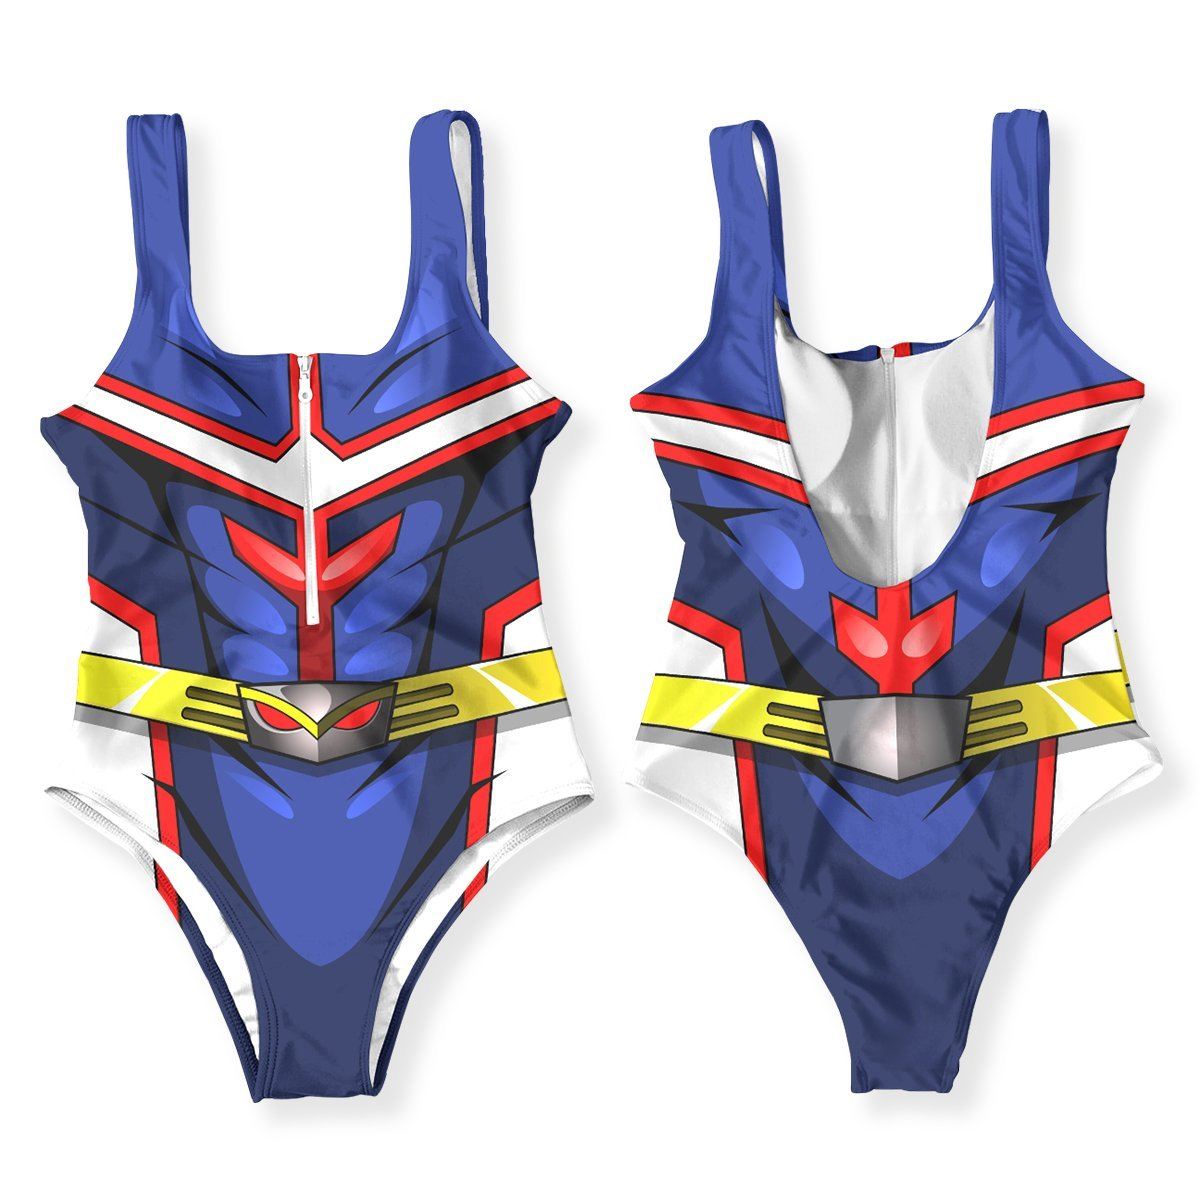 UA High All Might One Piece Swimsuit FDM3107 XS Official Anime Swimsuit Merch